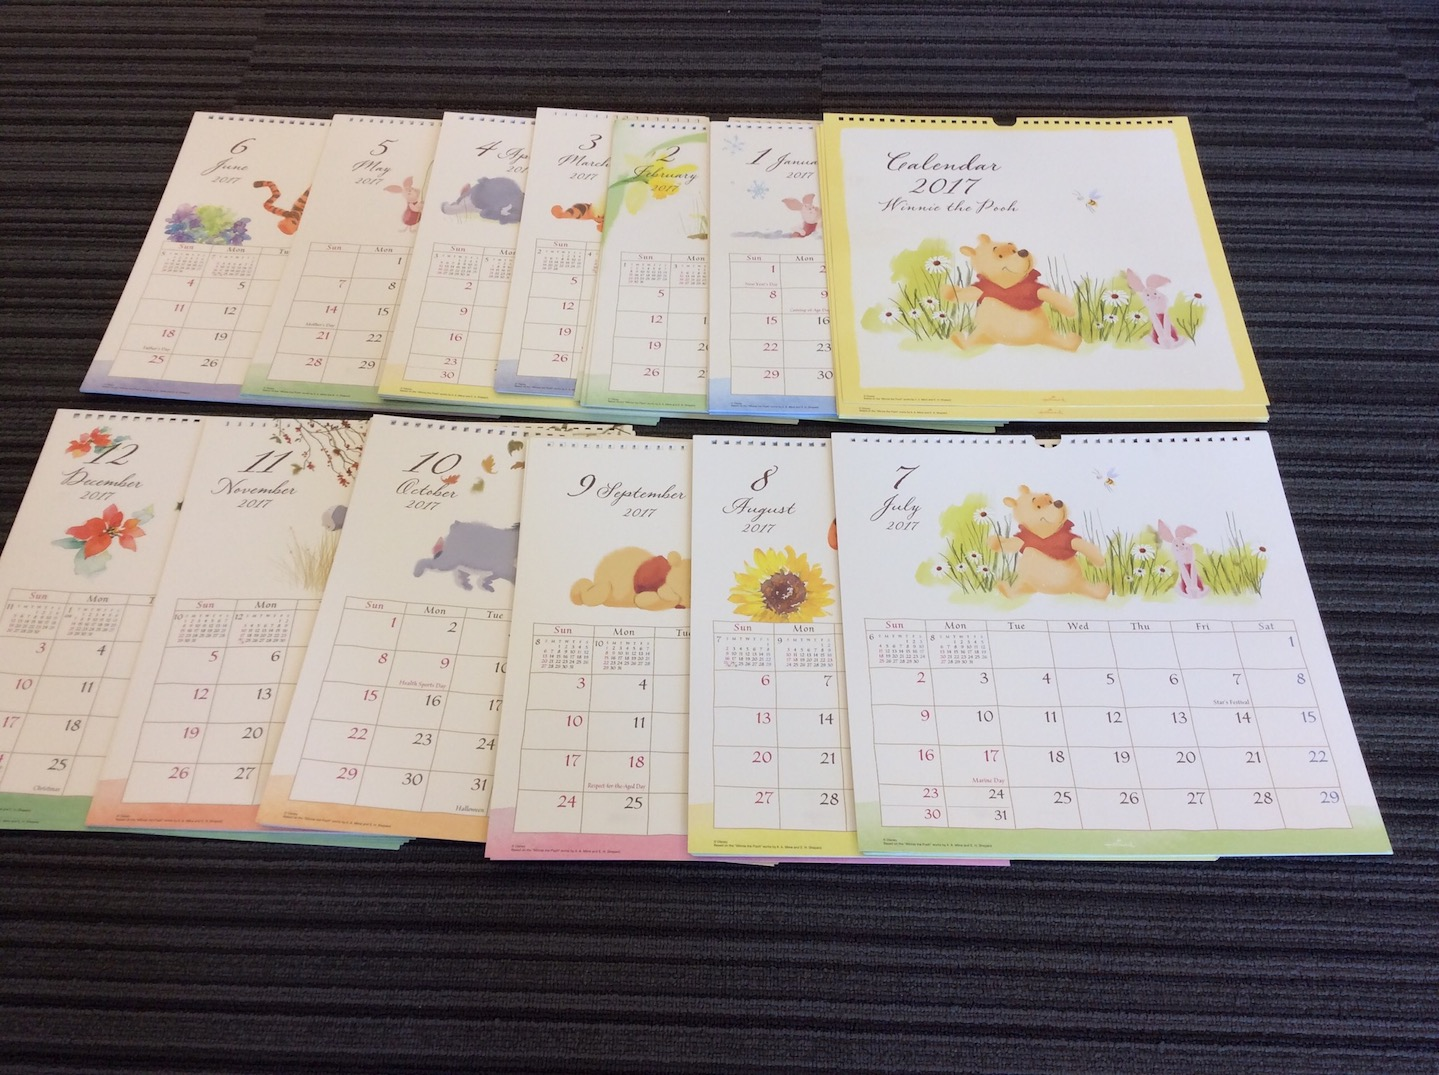 photo of Calender samples